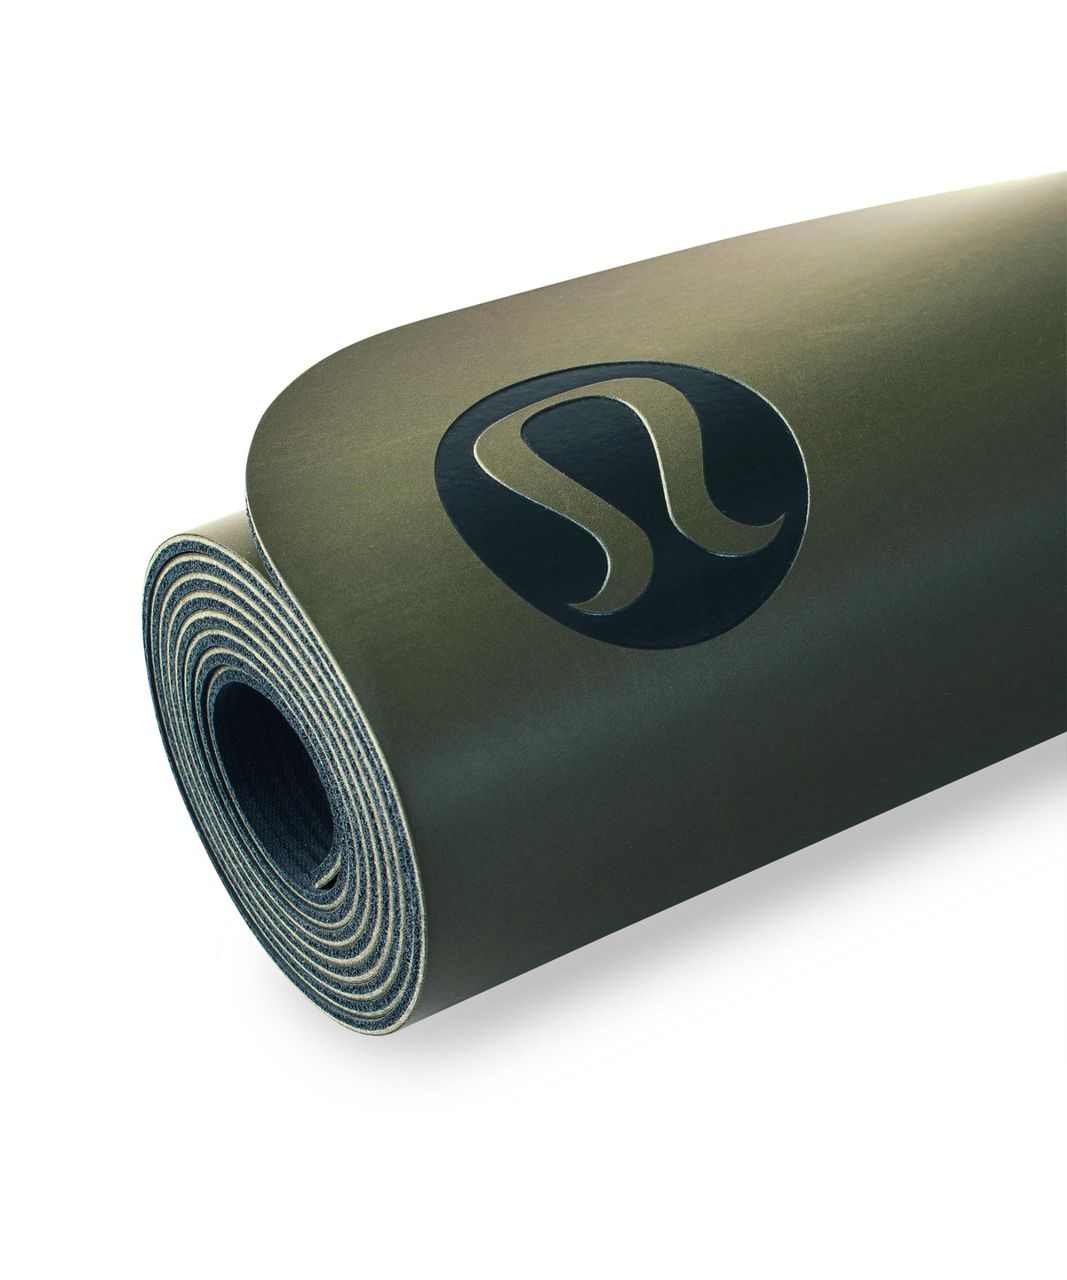 Lululemon The Mat 3mm - Fatigue Green